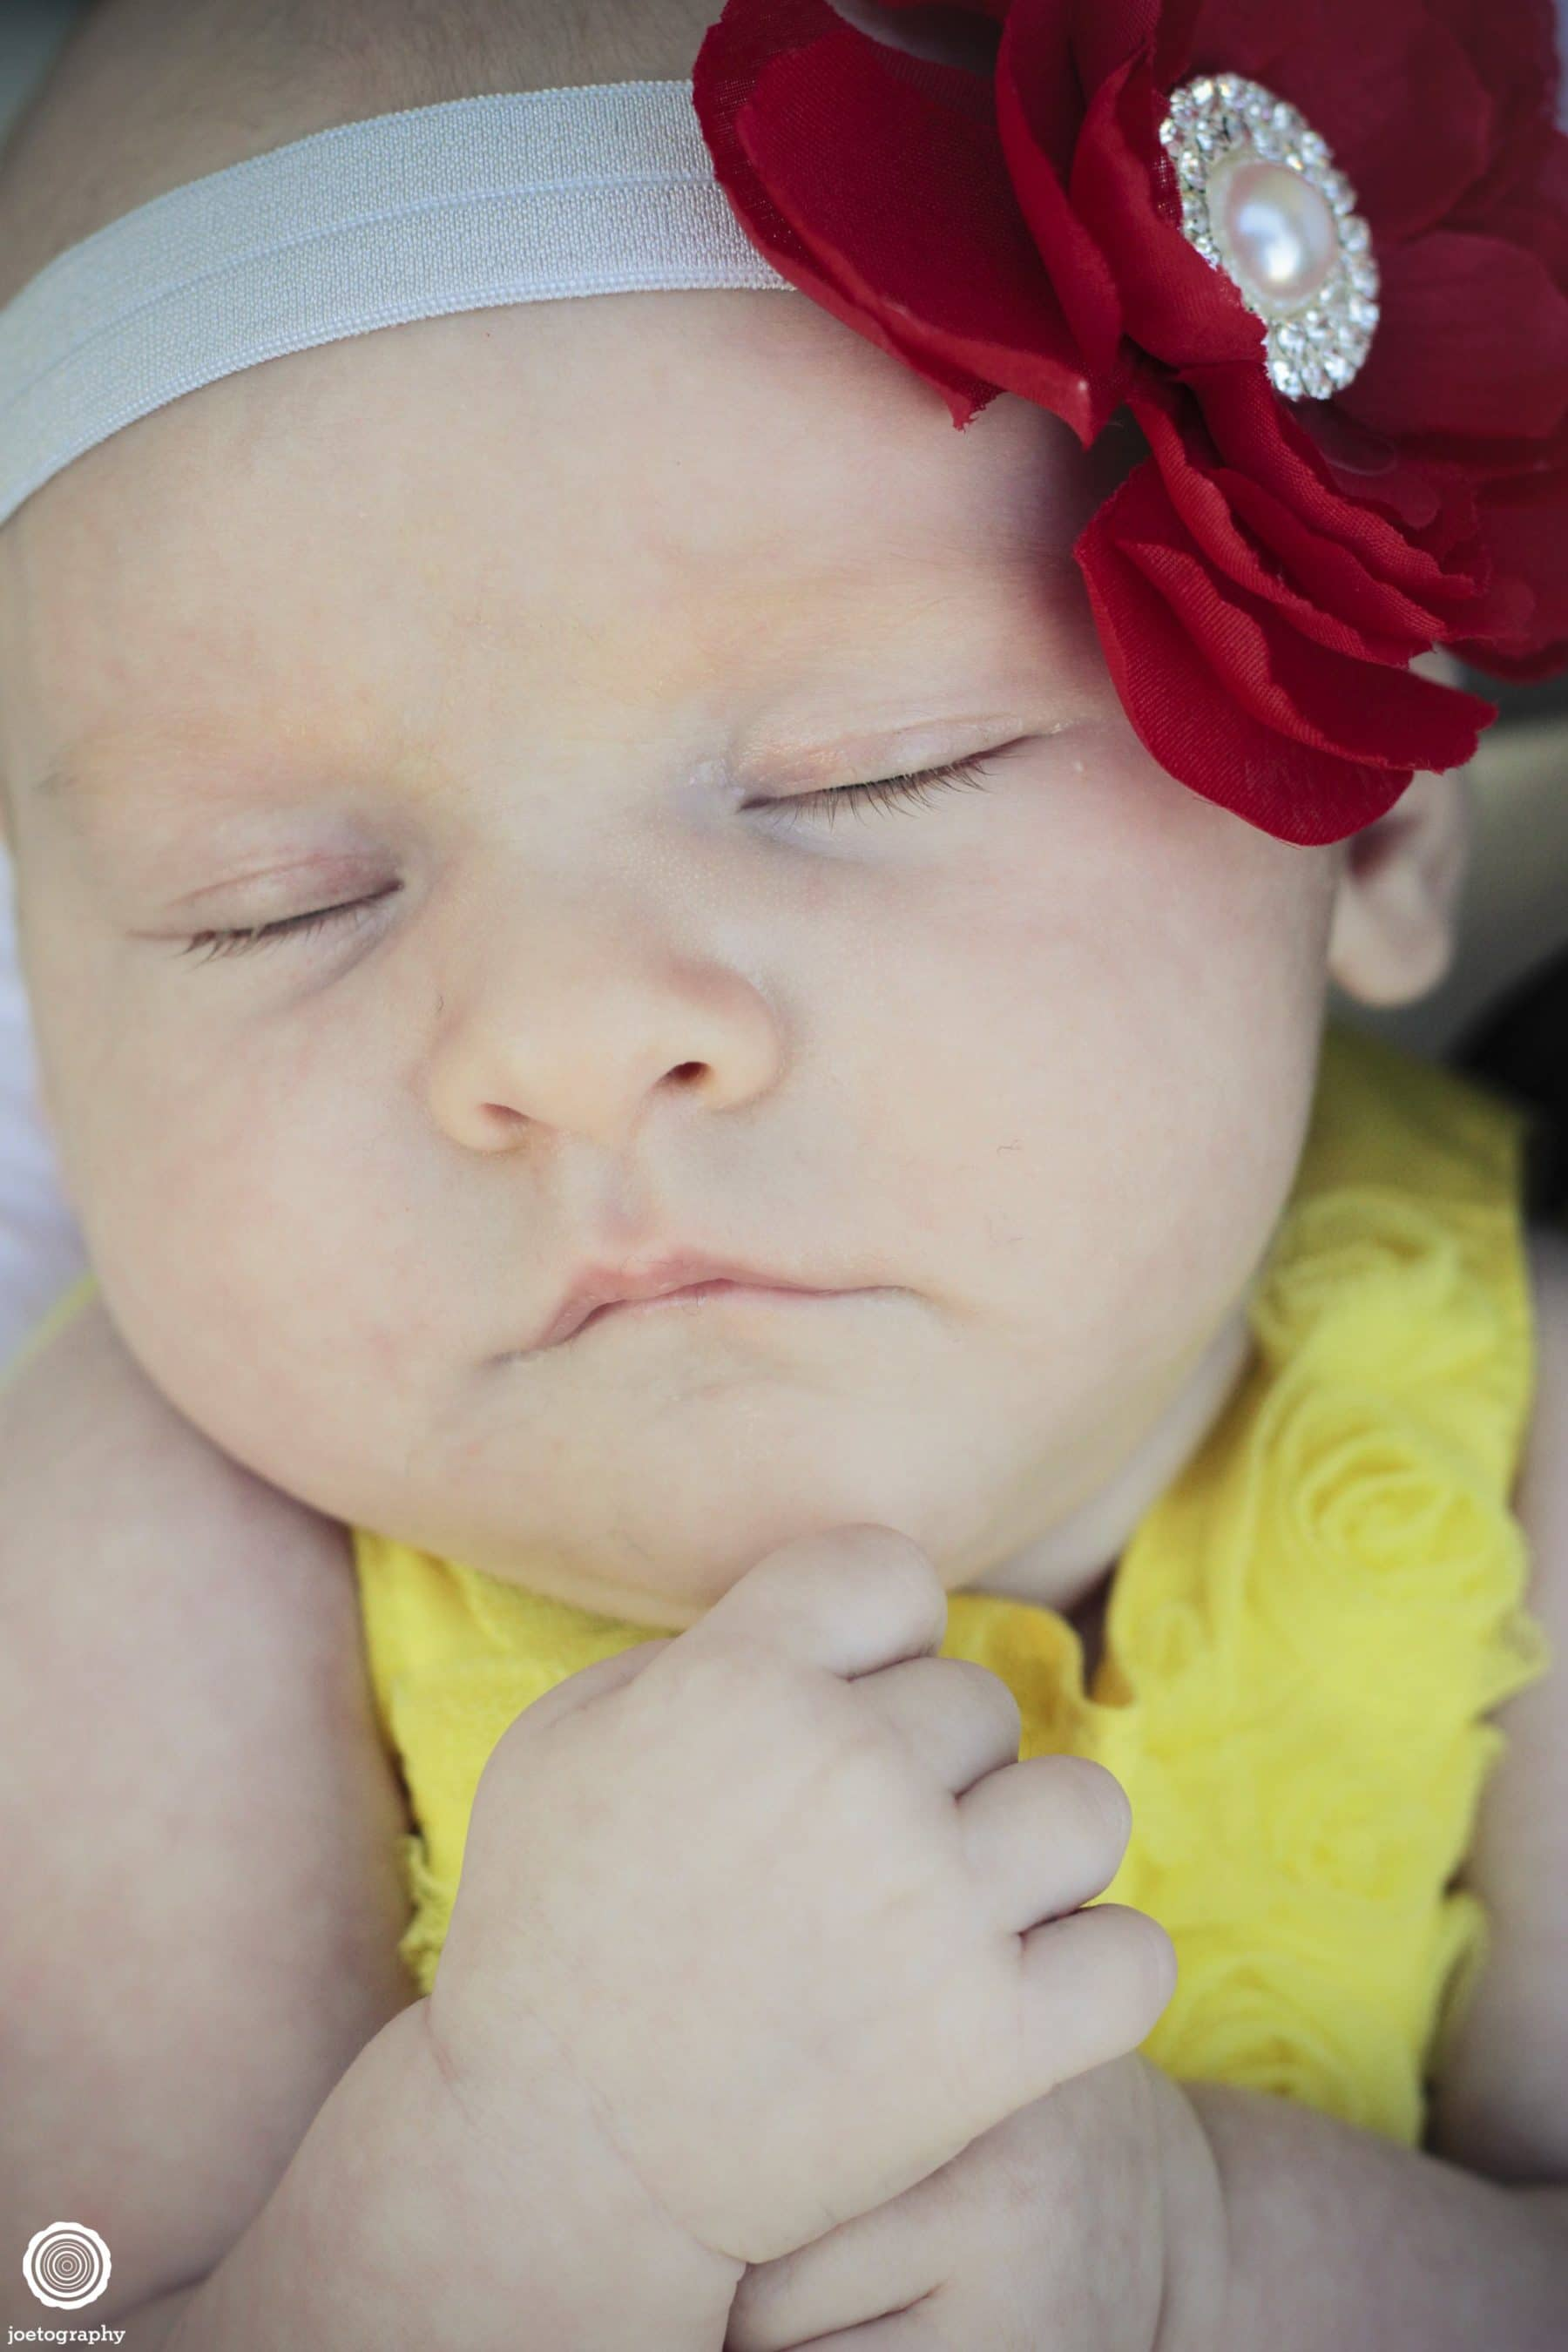 new-addition-baby-newborn-photography-104